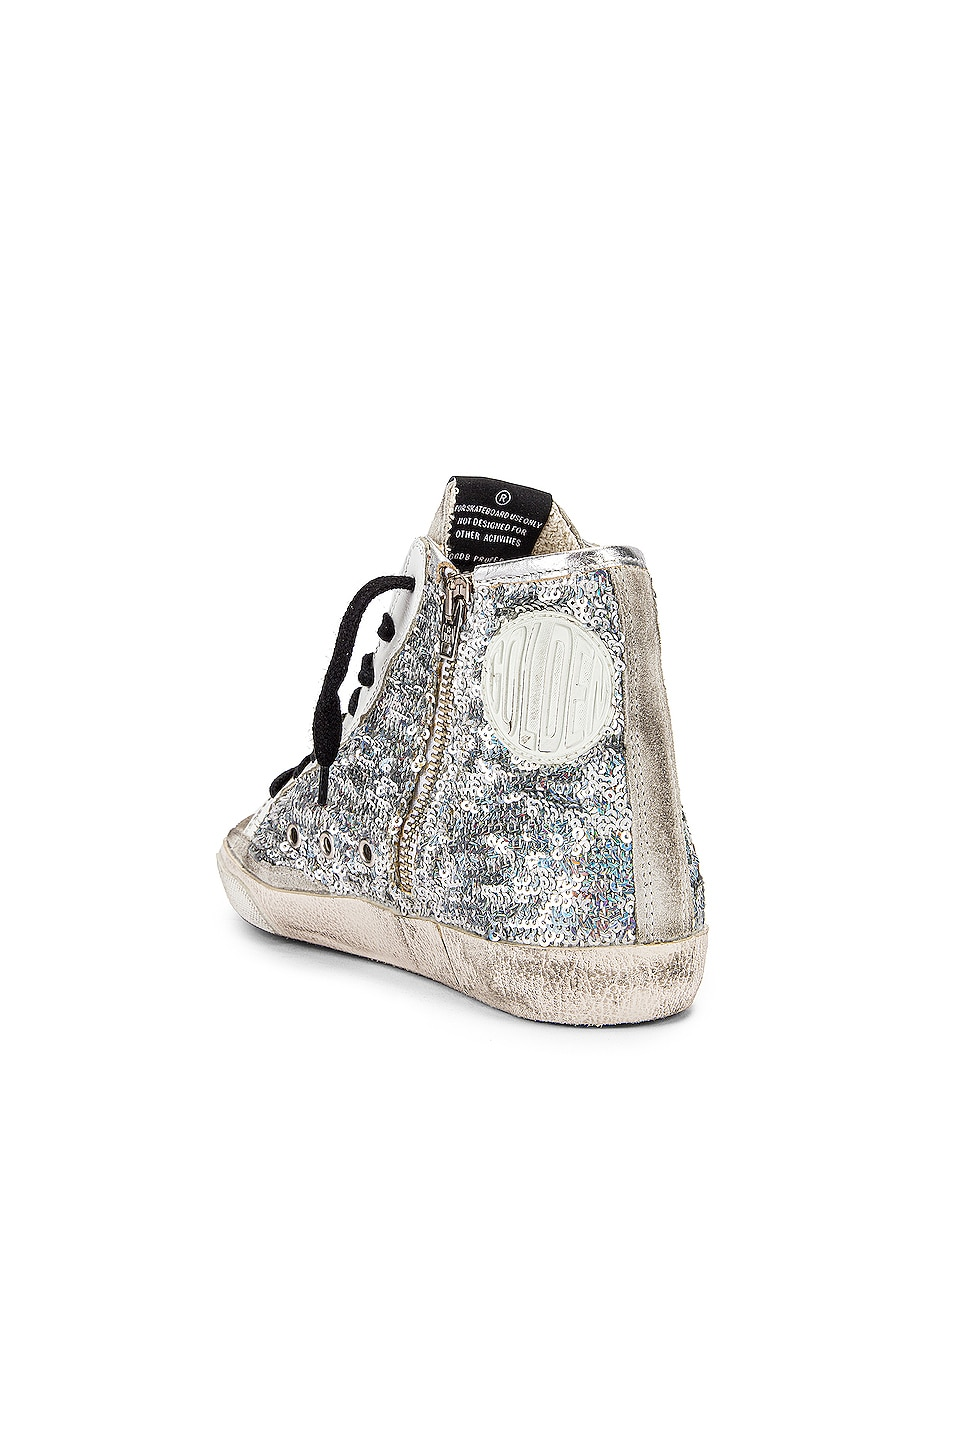 Image 3 of Golden Goose Francy Sneaker in Silver Paillettes & Pink